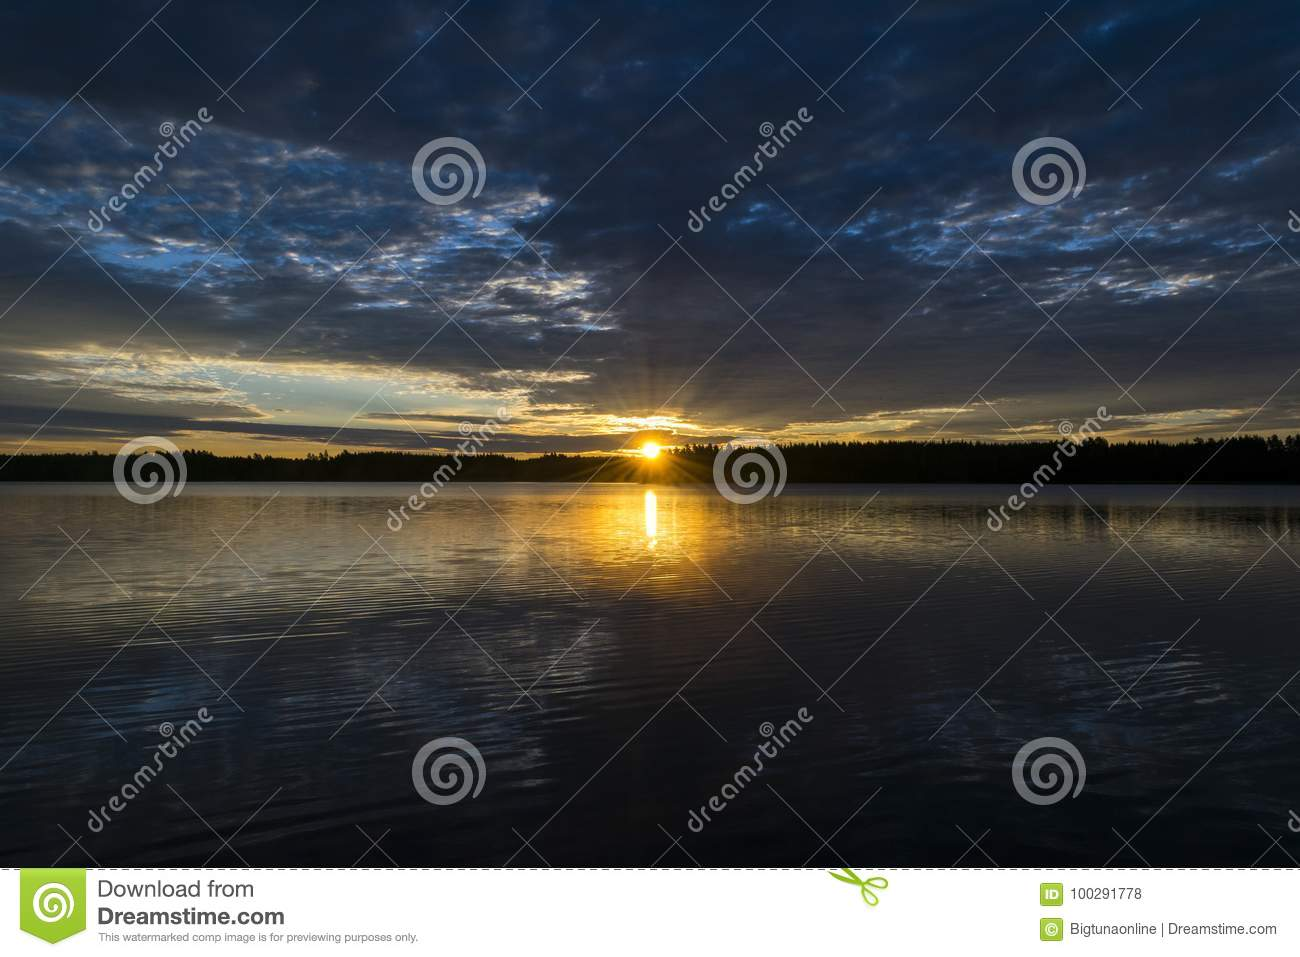 Sunset sky background. Dramatic gold sunset sky with evening sky clouds over the sea. Stunning sky clouds in the sunset. Sky